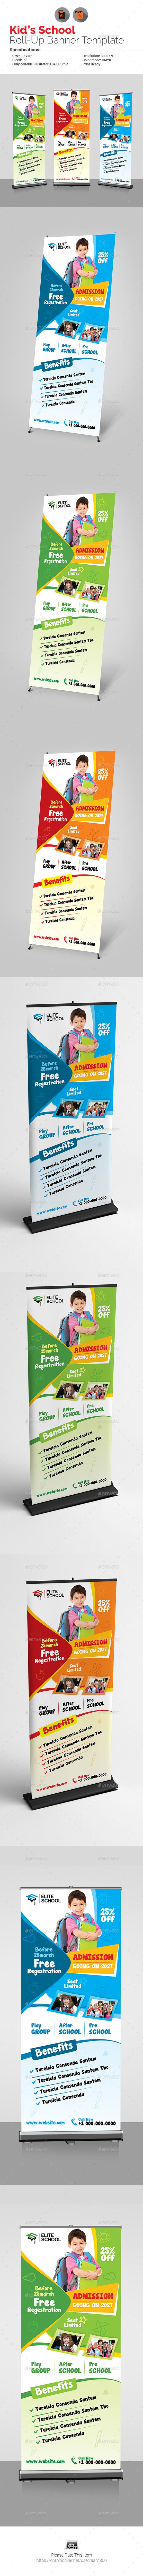 Junior School Promotional #Roll-Up Banner - #Signage Print Templates